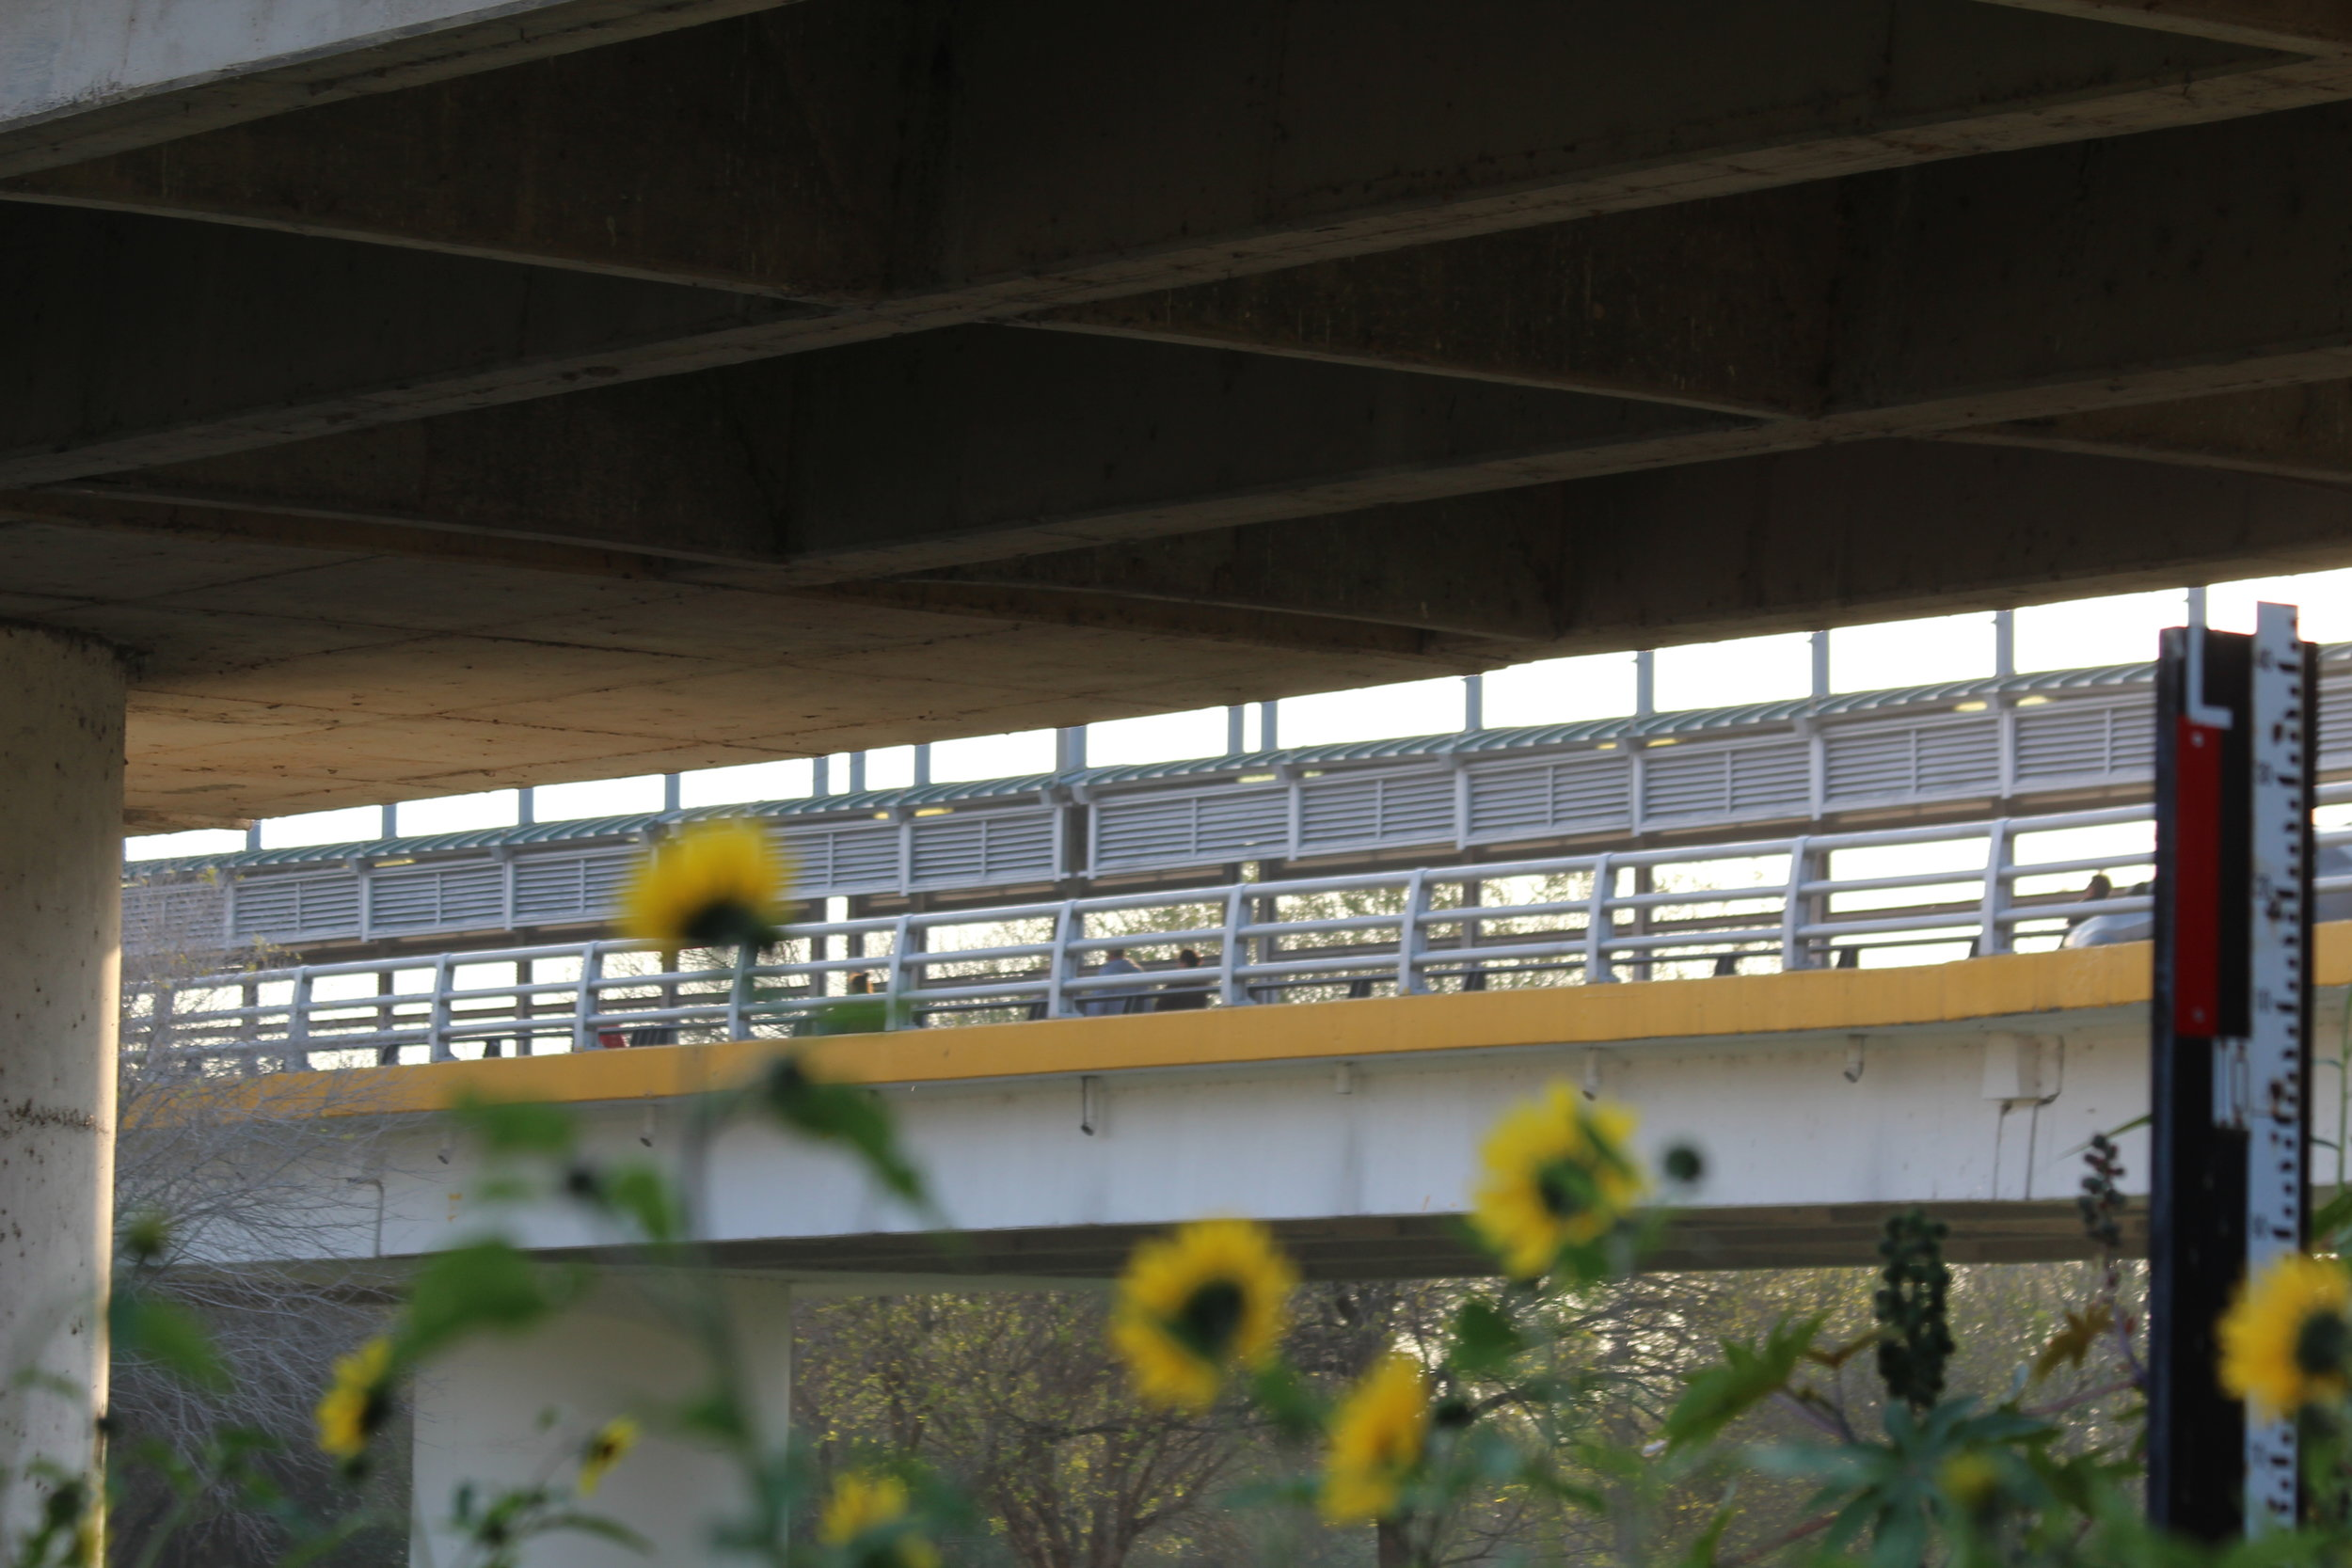 7_Brownsville ped bridge 2.JPG